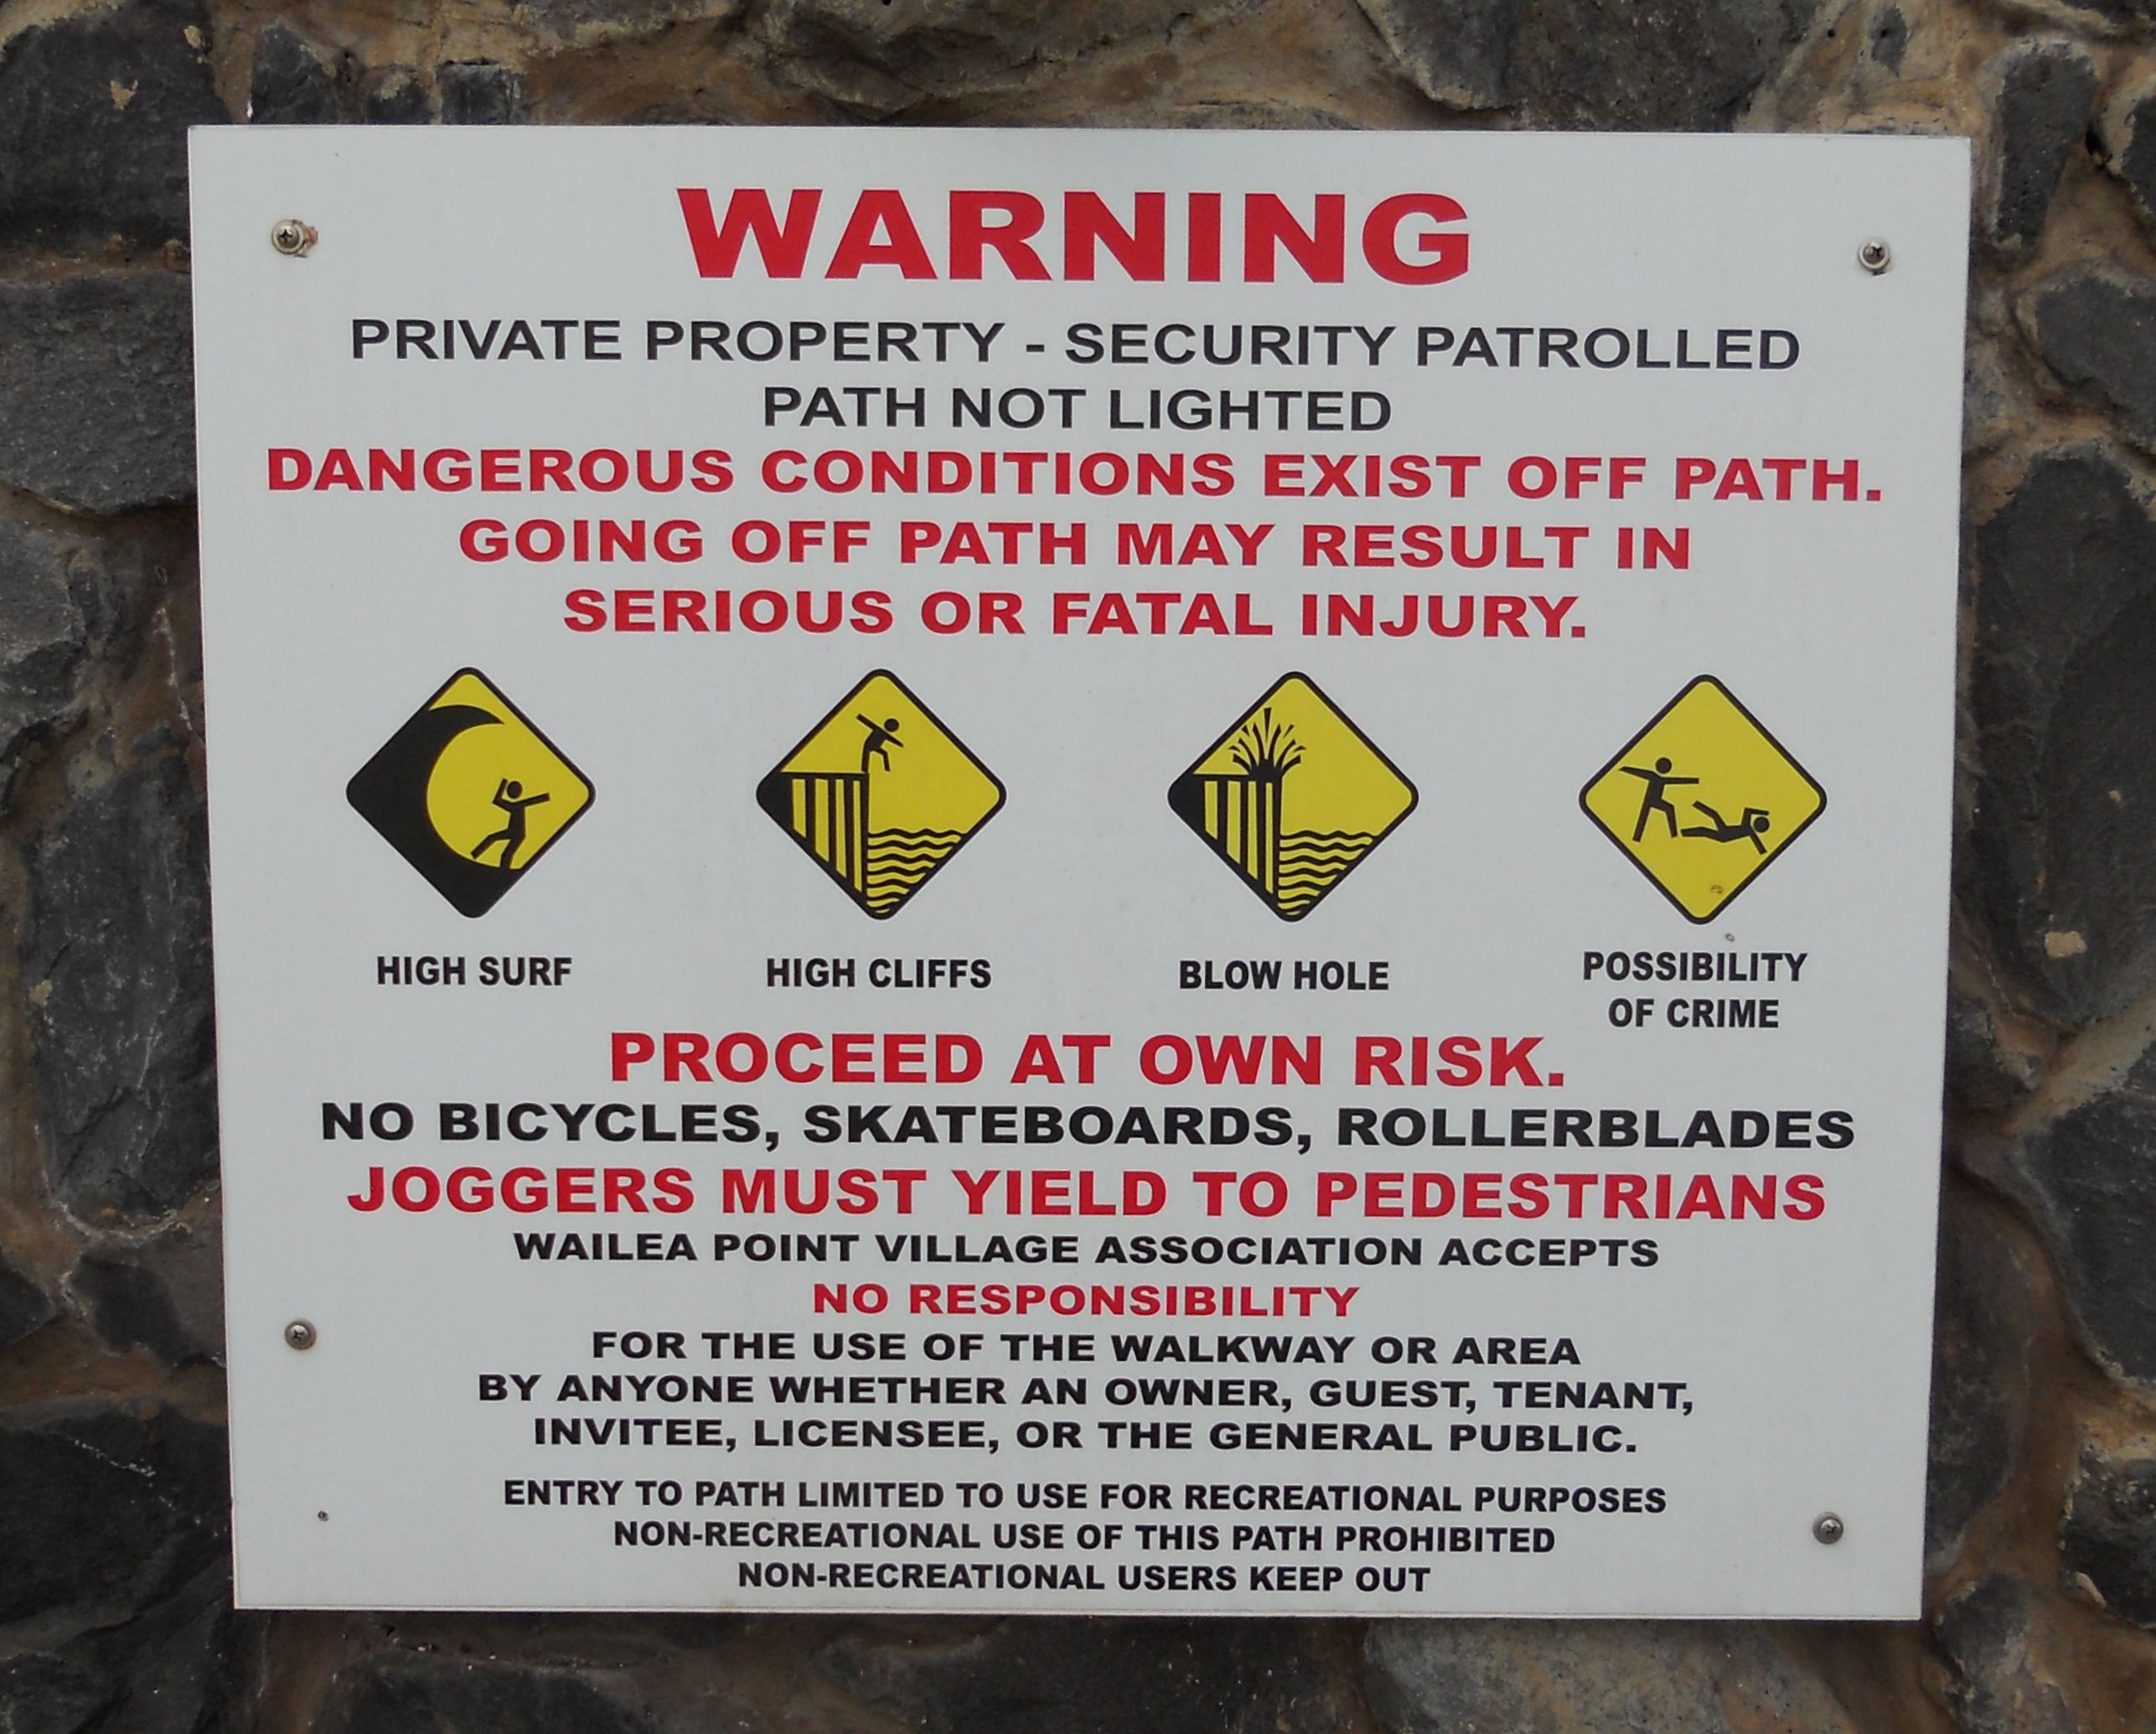 No mention of the risk of drone strikes for walking on private property.